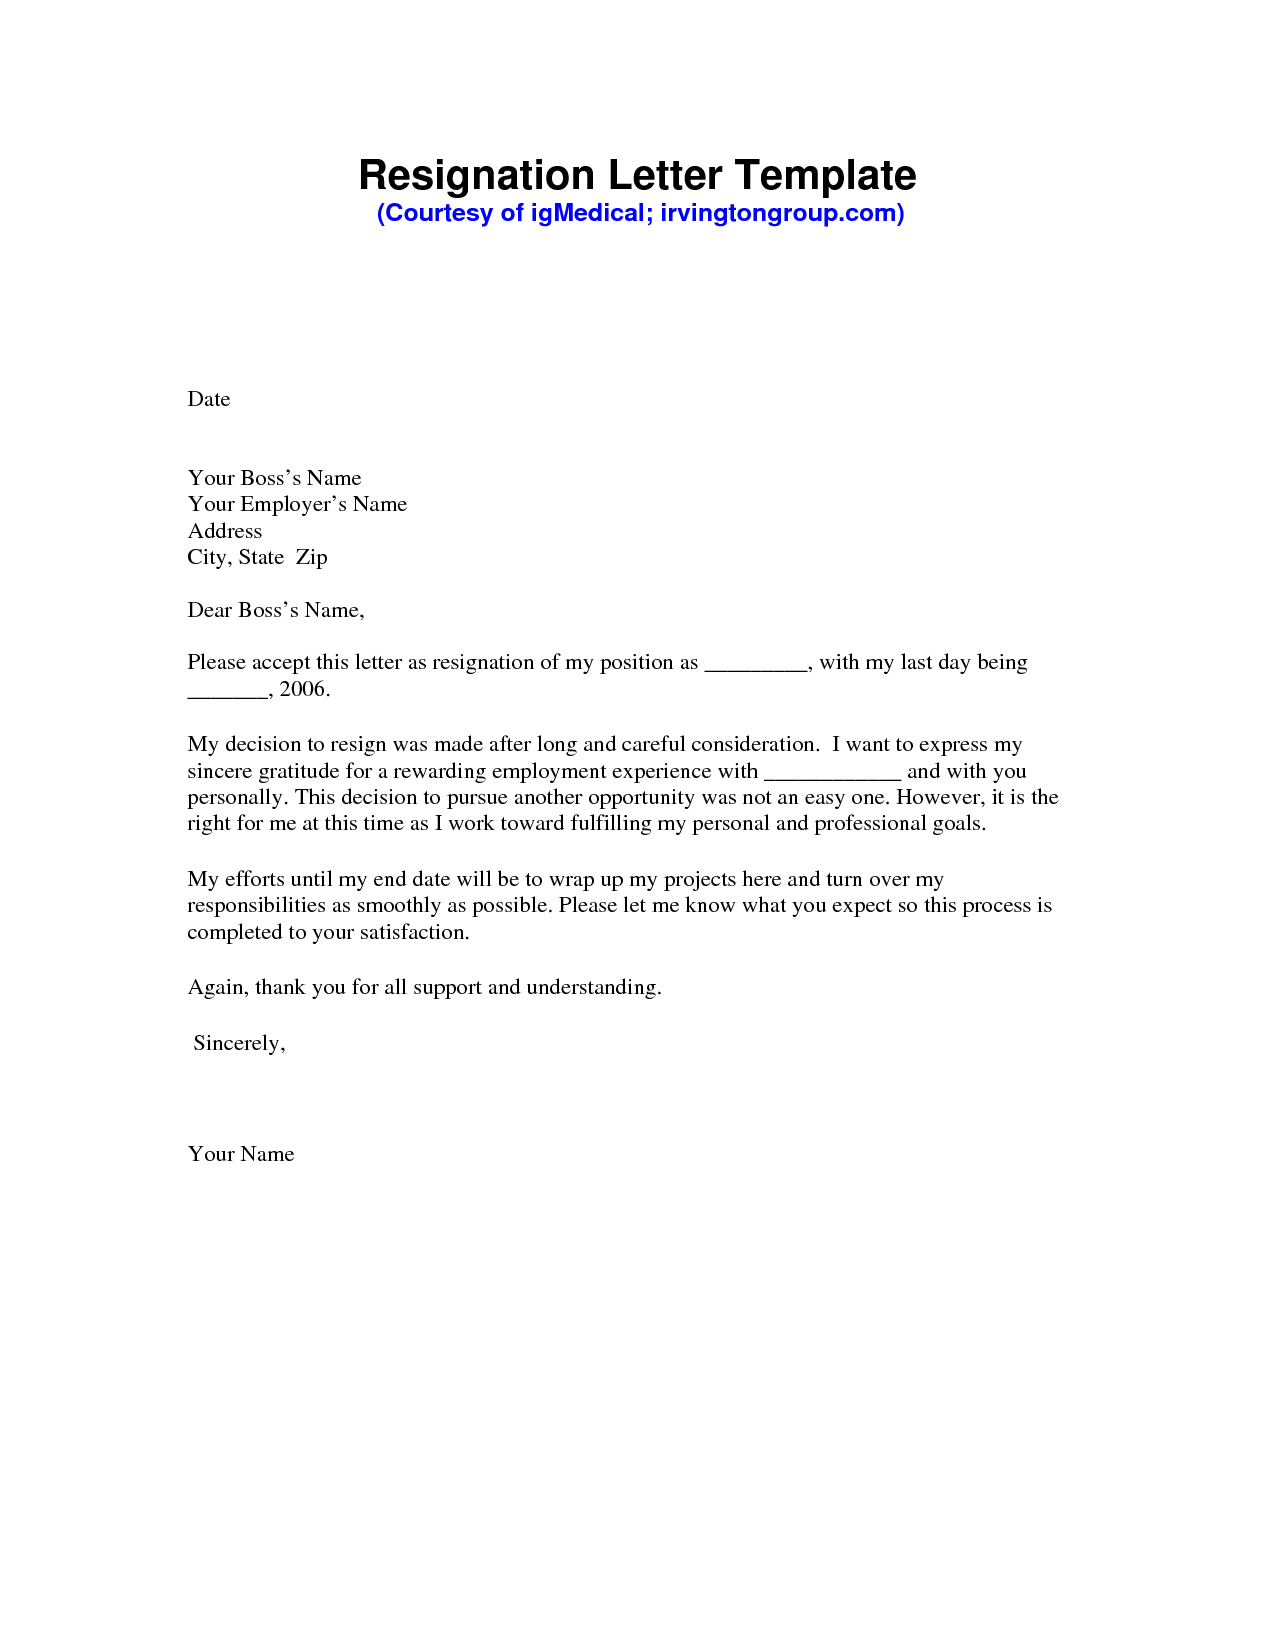 professional resignation letter template apology letter 2017 17